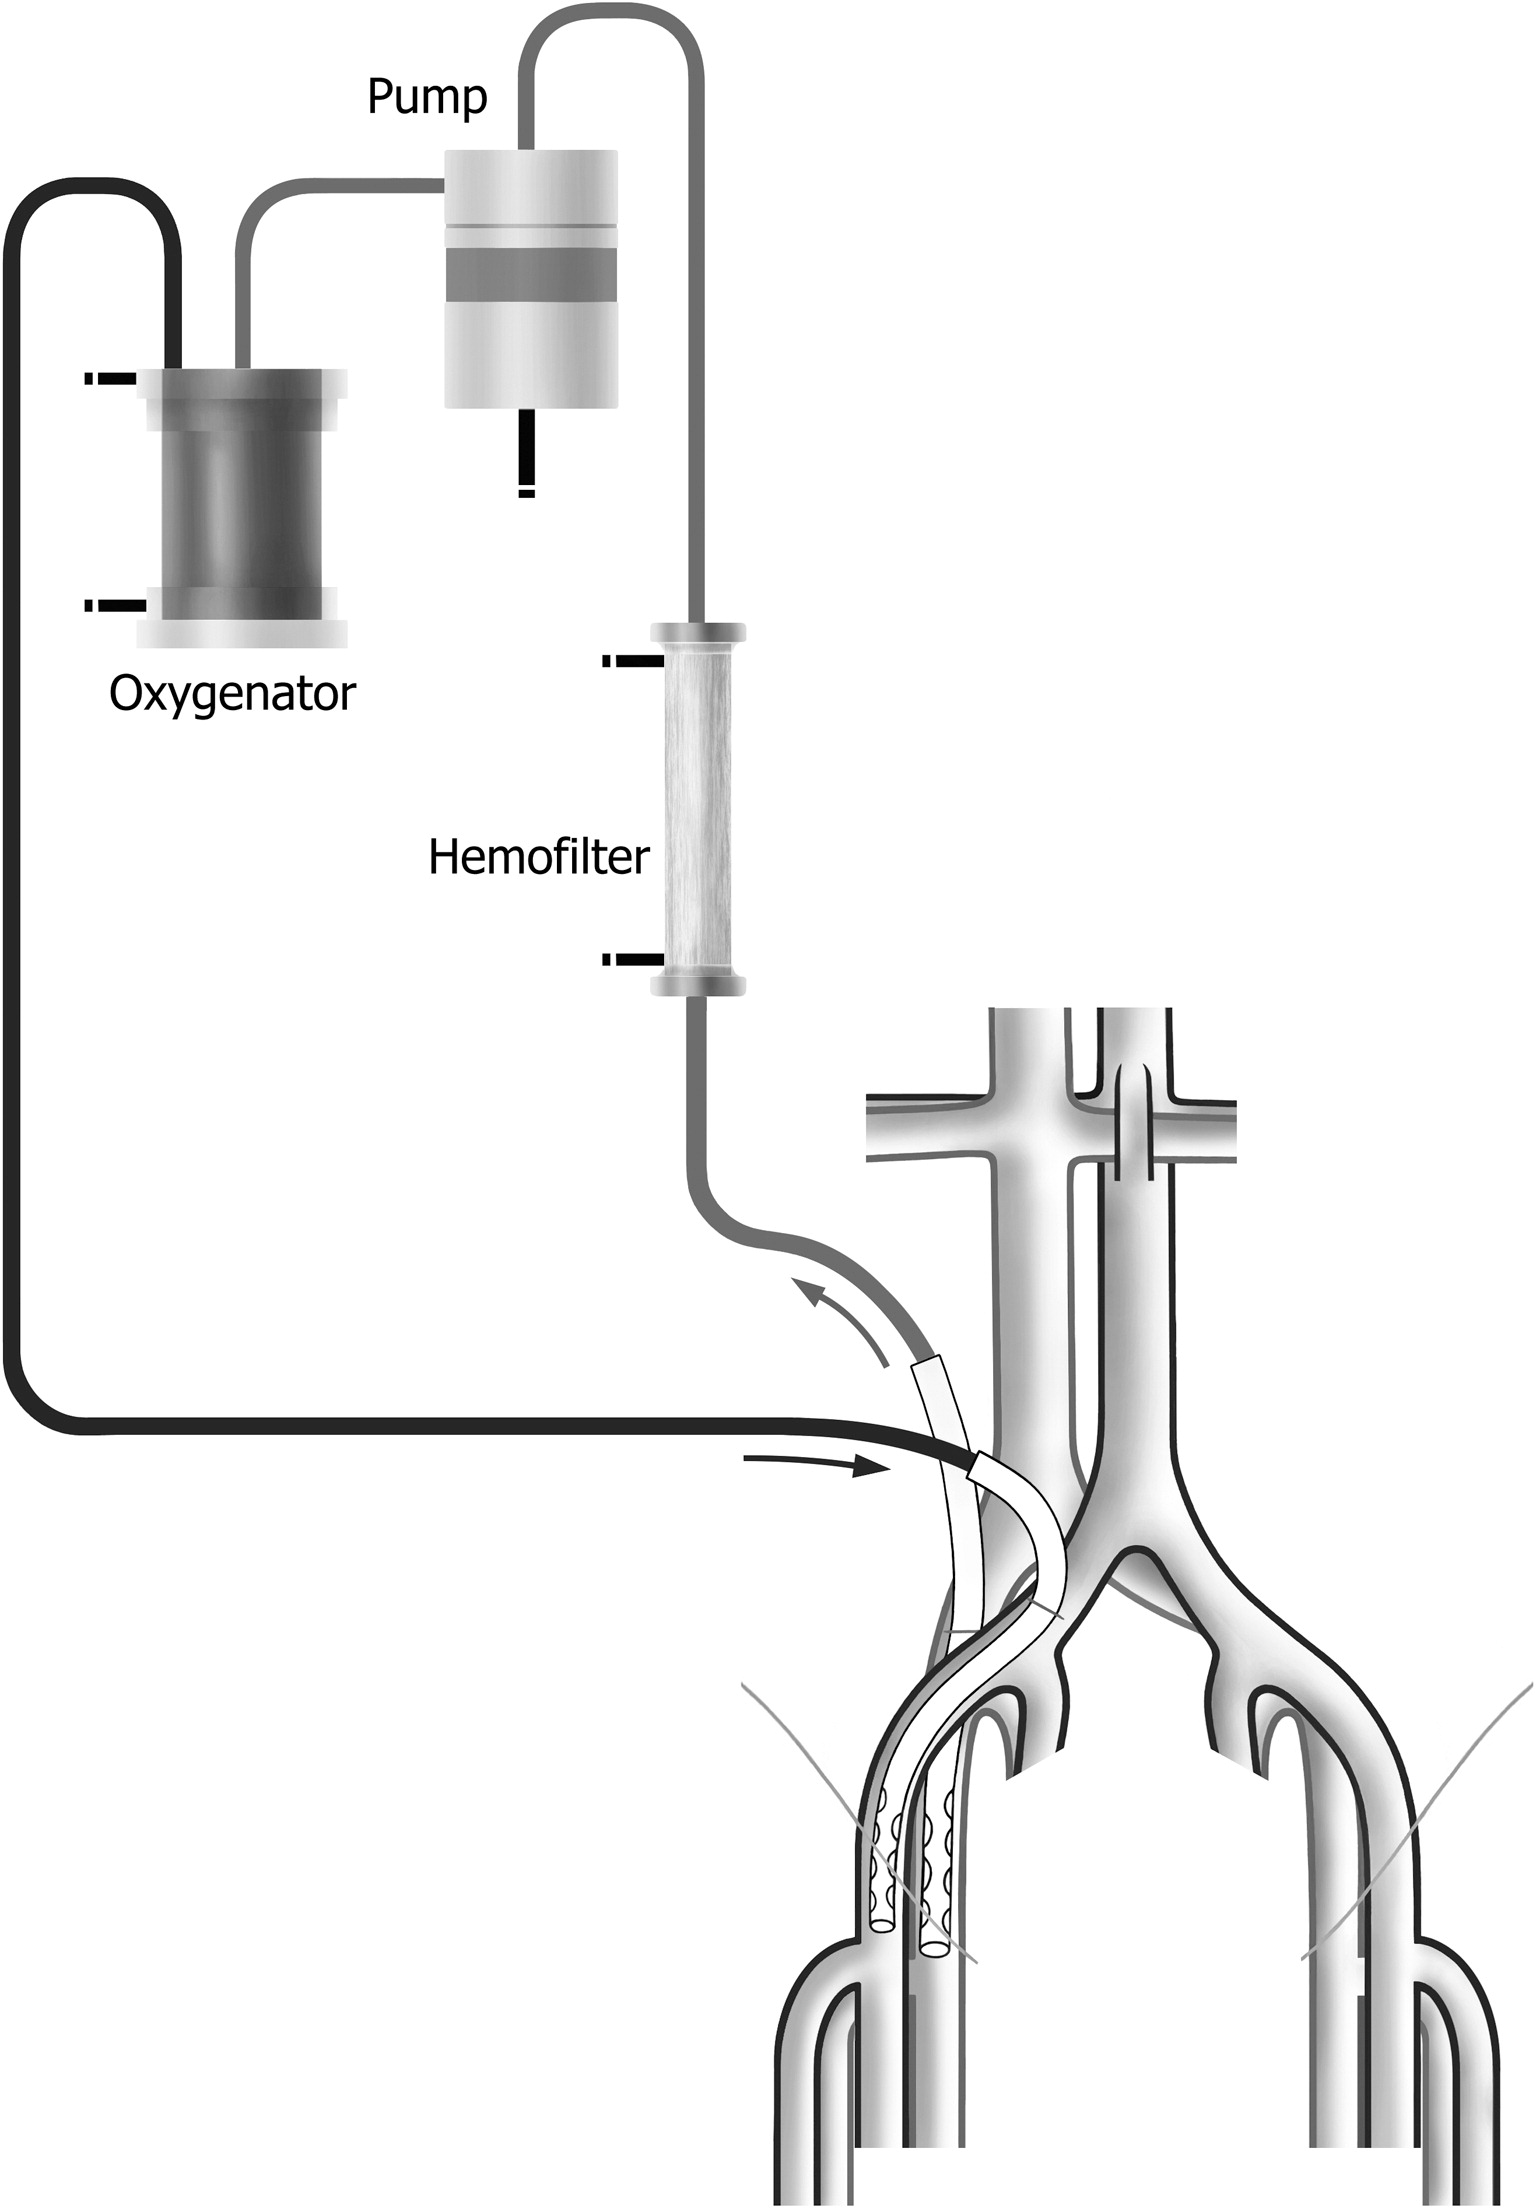 Hypothermic Initially Oxygen Free Controlled Limb